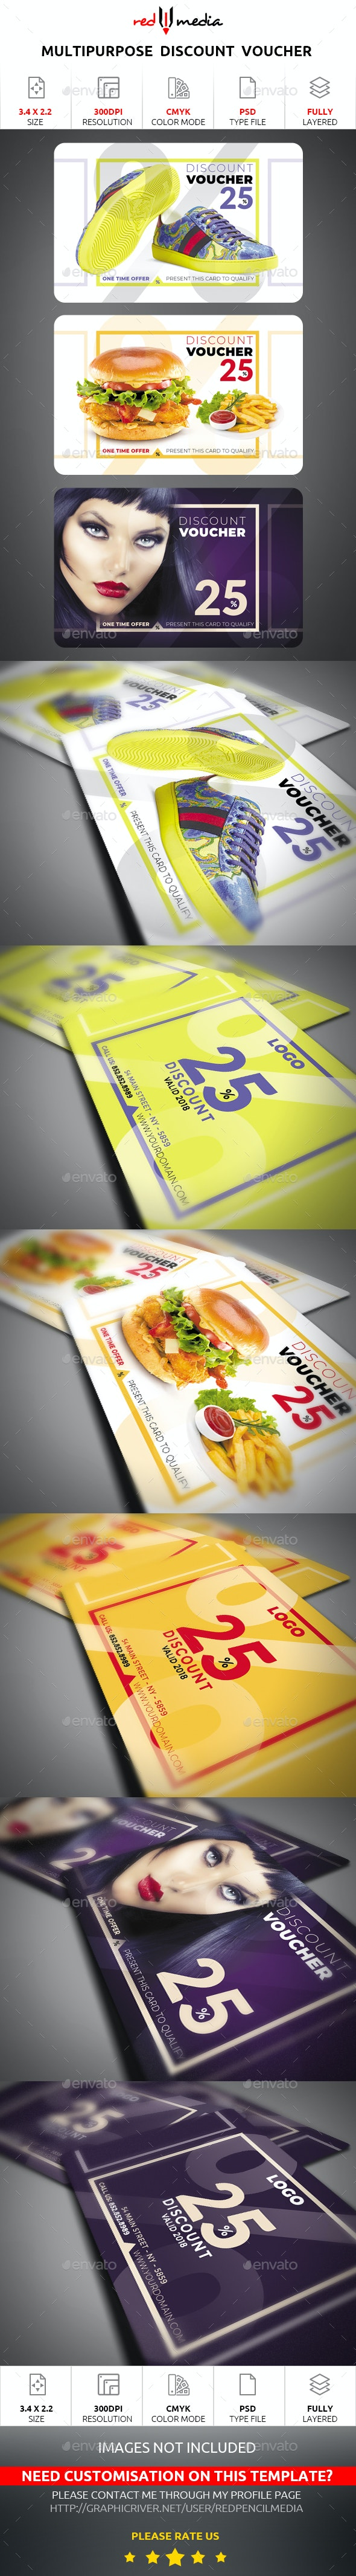 Multipurpose Discount Voucher - Loyalty Cards Cards & Invites